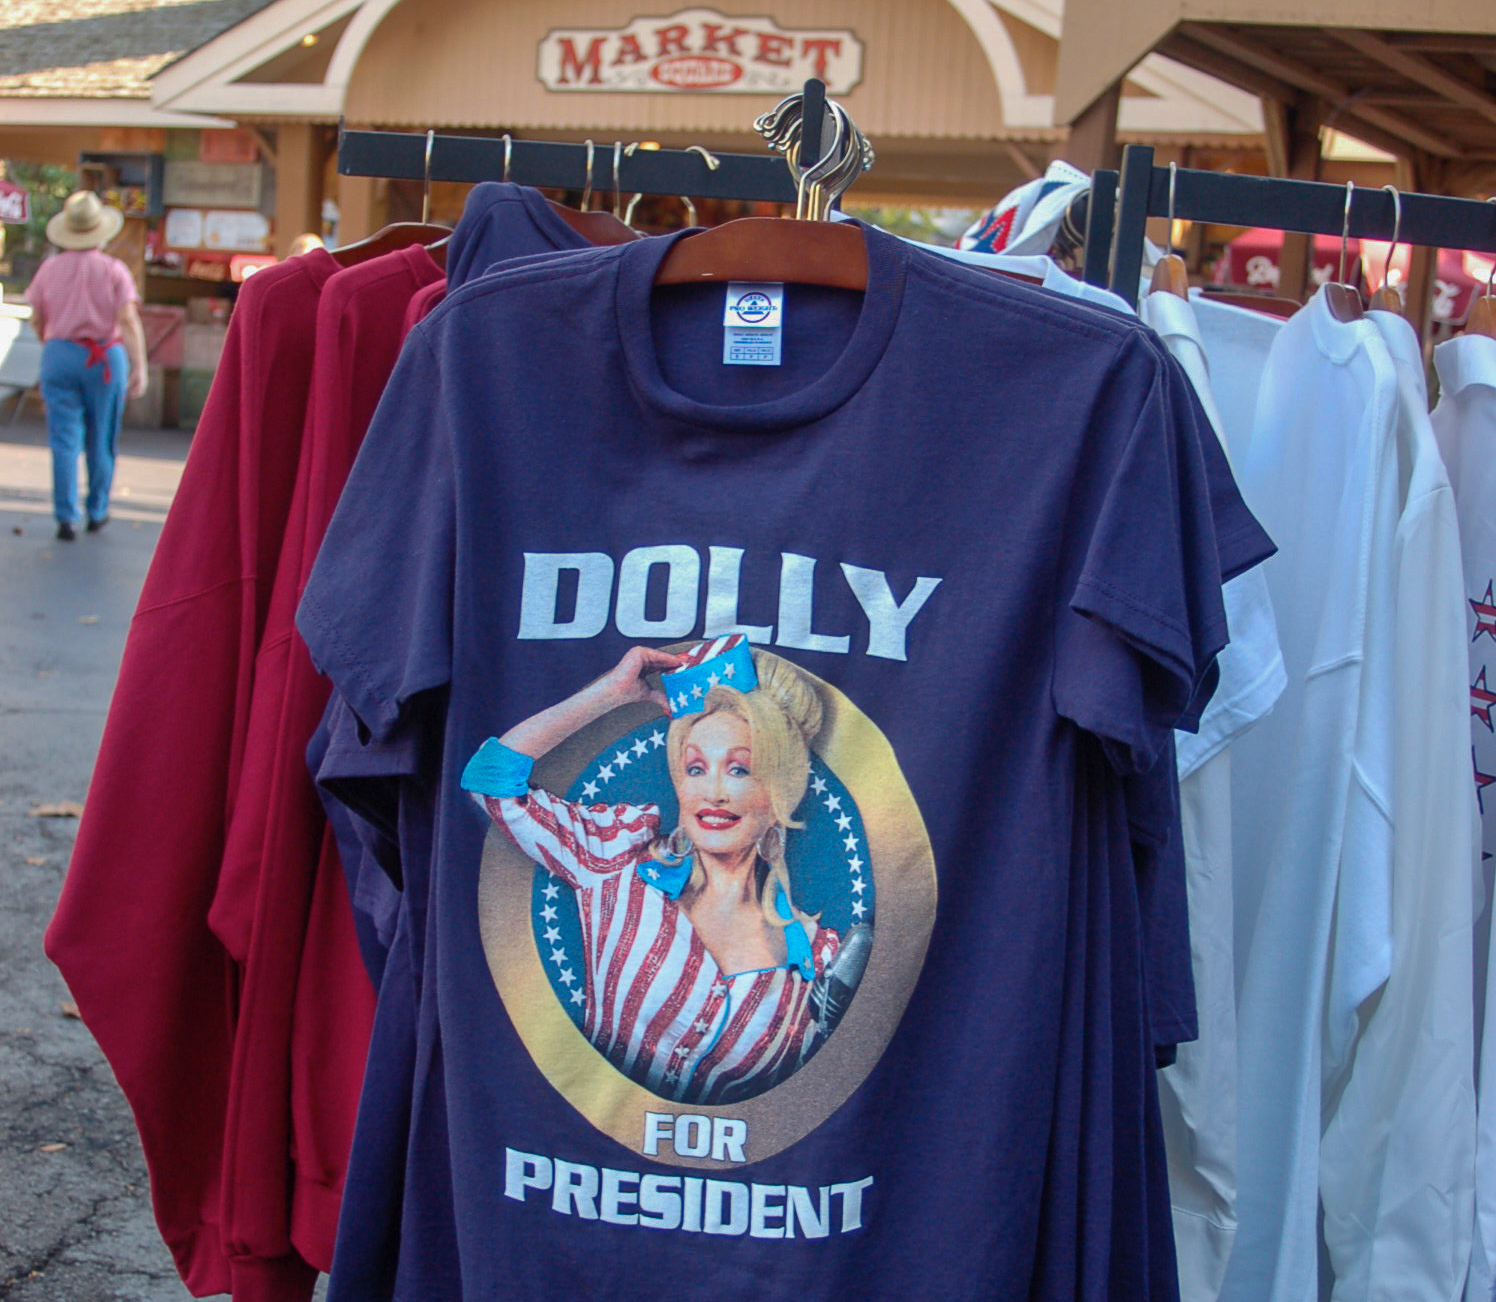 Dolly for President, T-Shirt in Dollywood